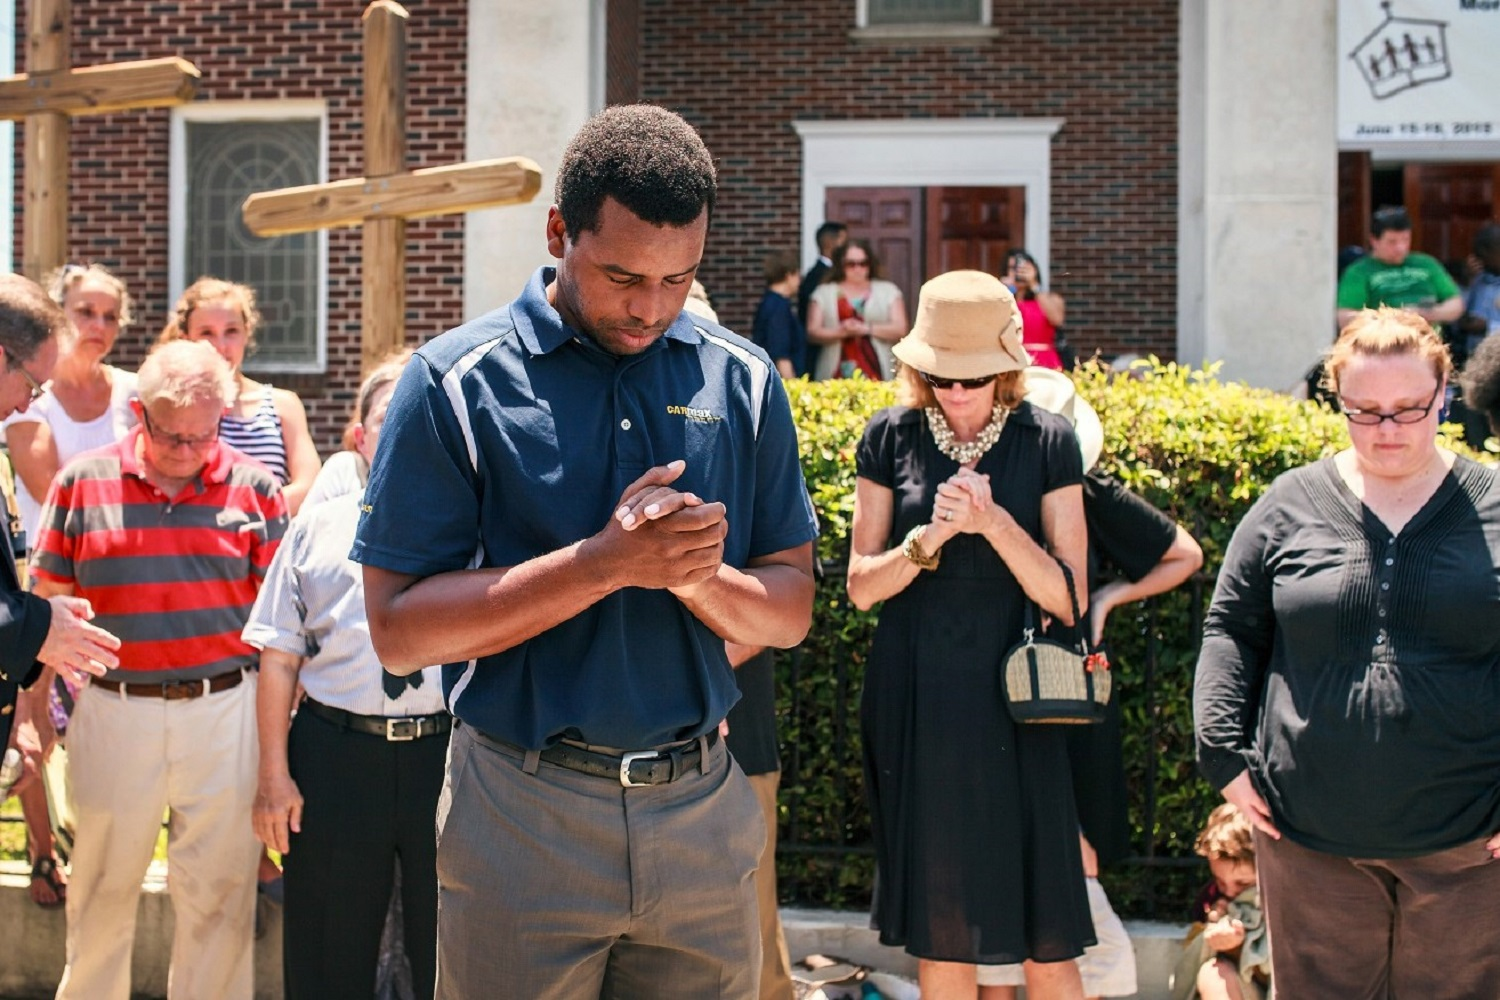 Robert Griggs (center)  prays with others outside Morris Brown African Methodist Episcopal Church in Charleston, S.C.  United Methodists joined AME members in prayers following the deadly shooting at Emanuel AME Church in Charleston. Photo by Lekisa Coleman-Smalls, UMNS